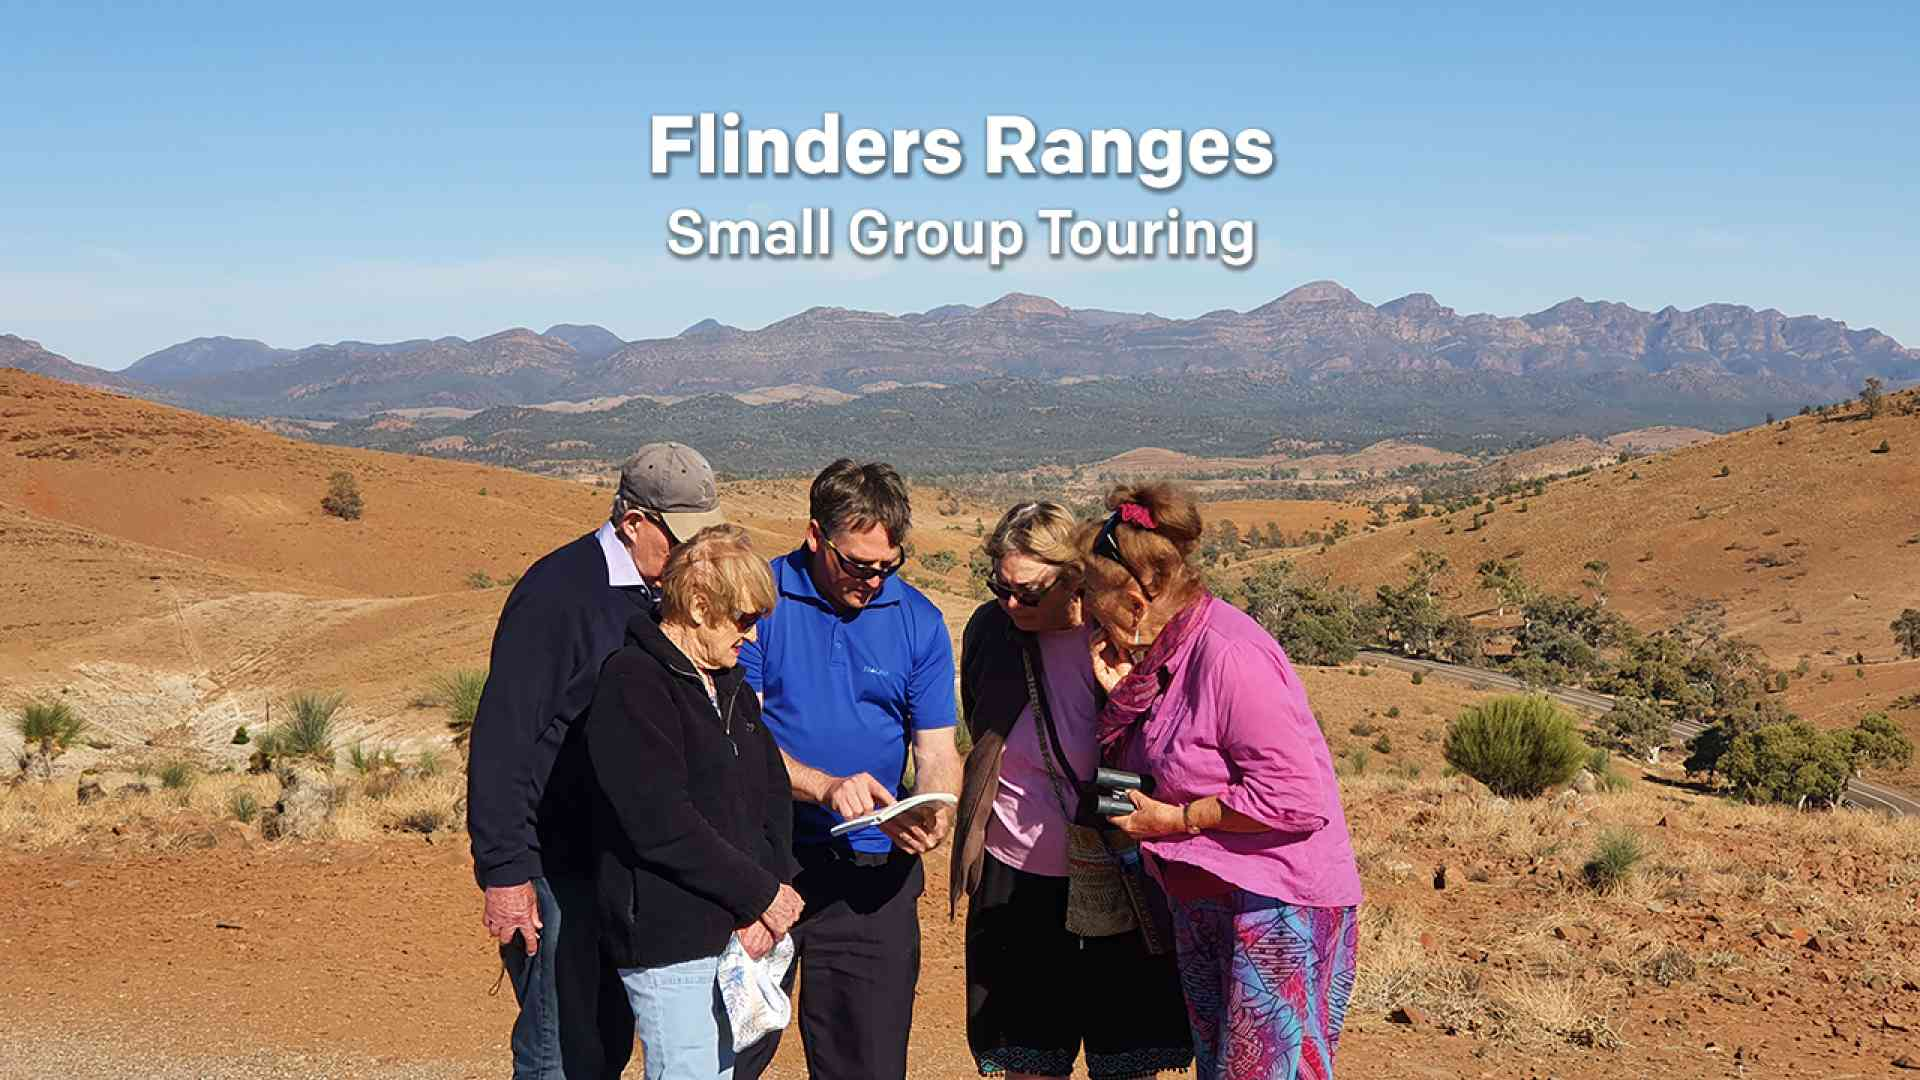 Flinders Ranges with the SA Experts